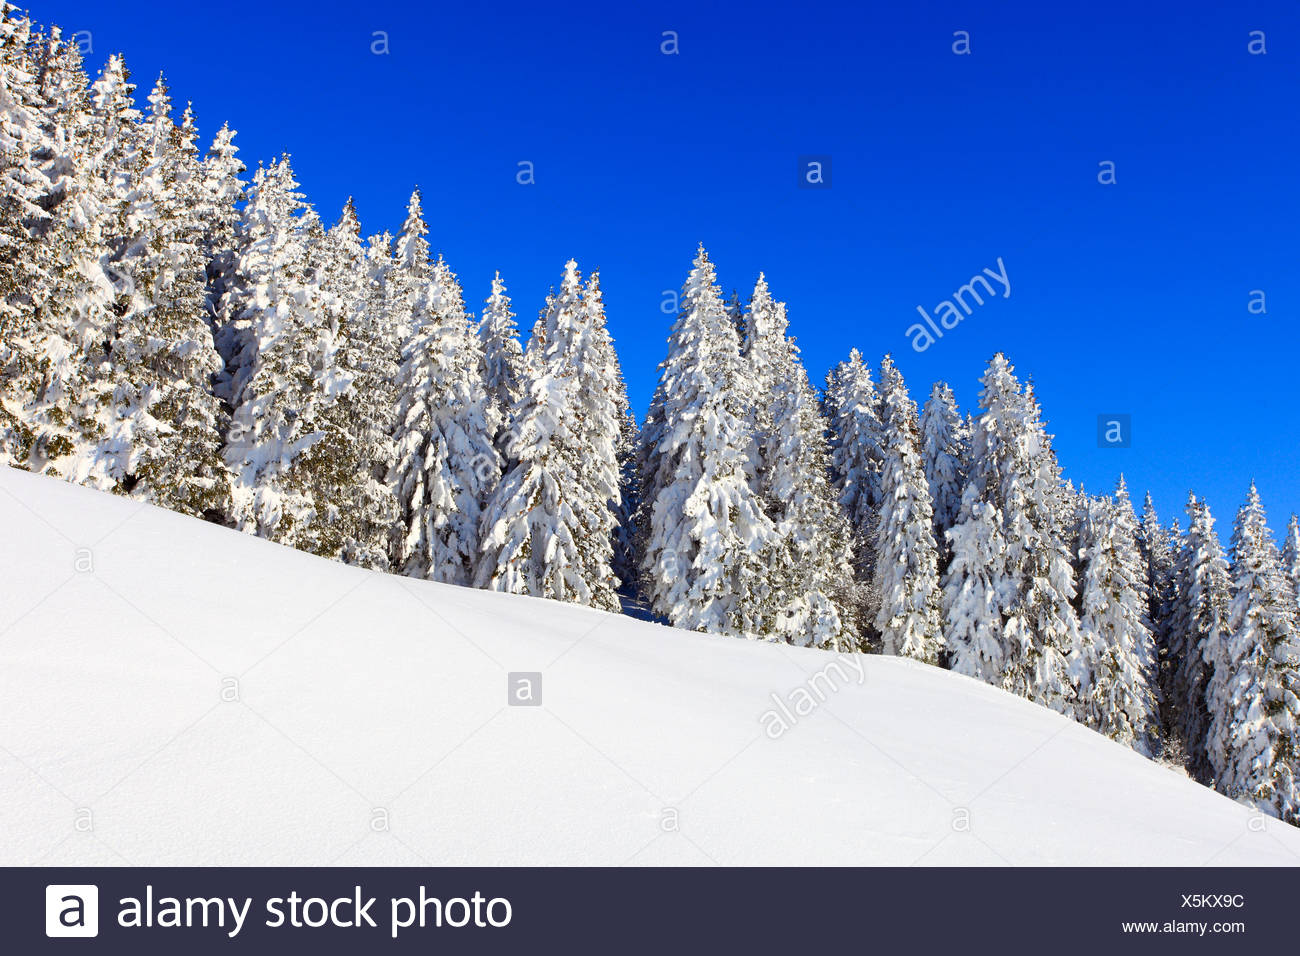 snow-covered slope in front of conifer forest, Switzerland, Gurnigel - Stock Image